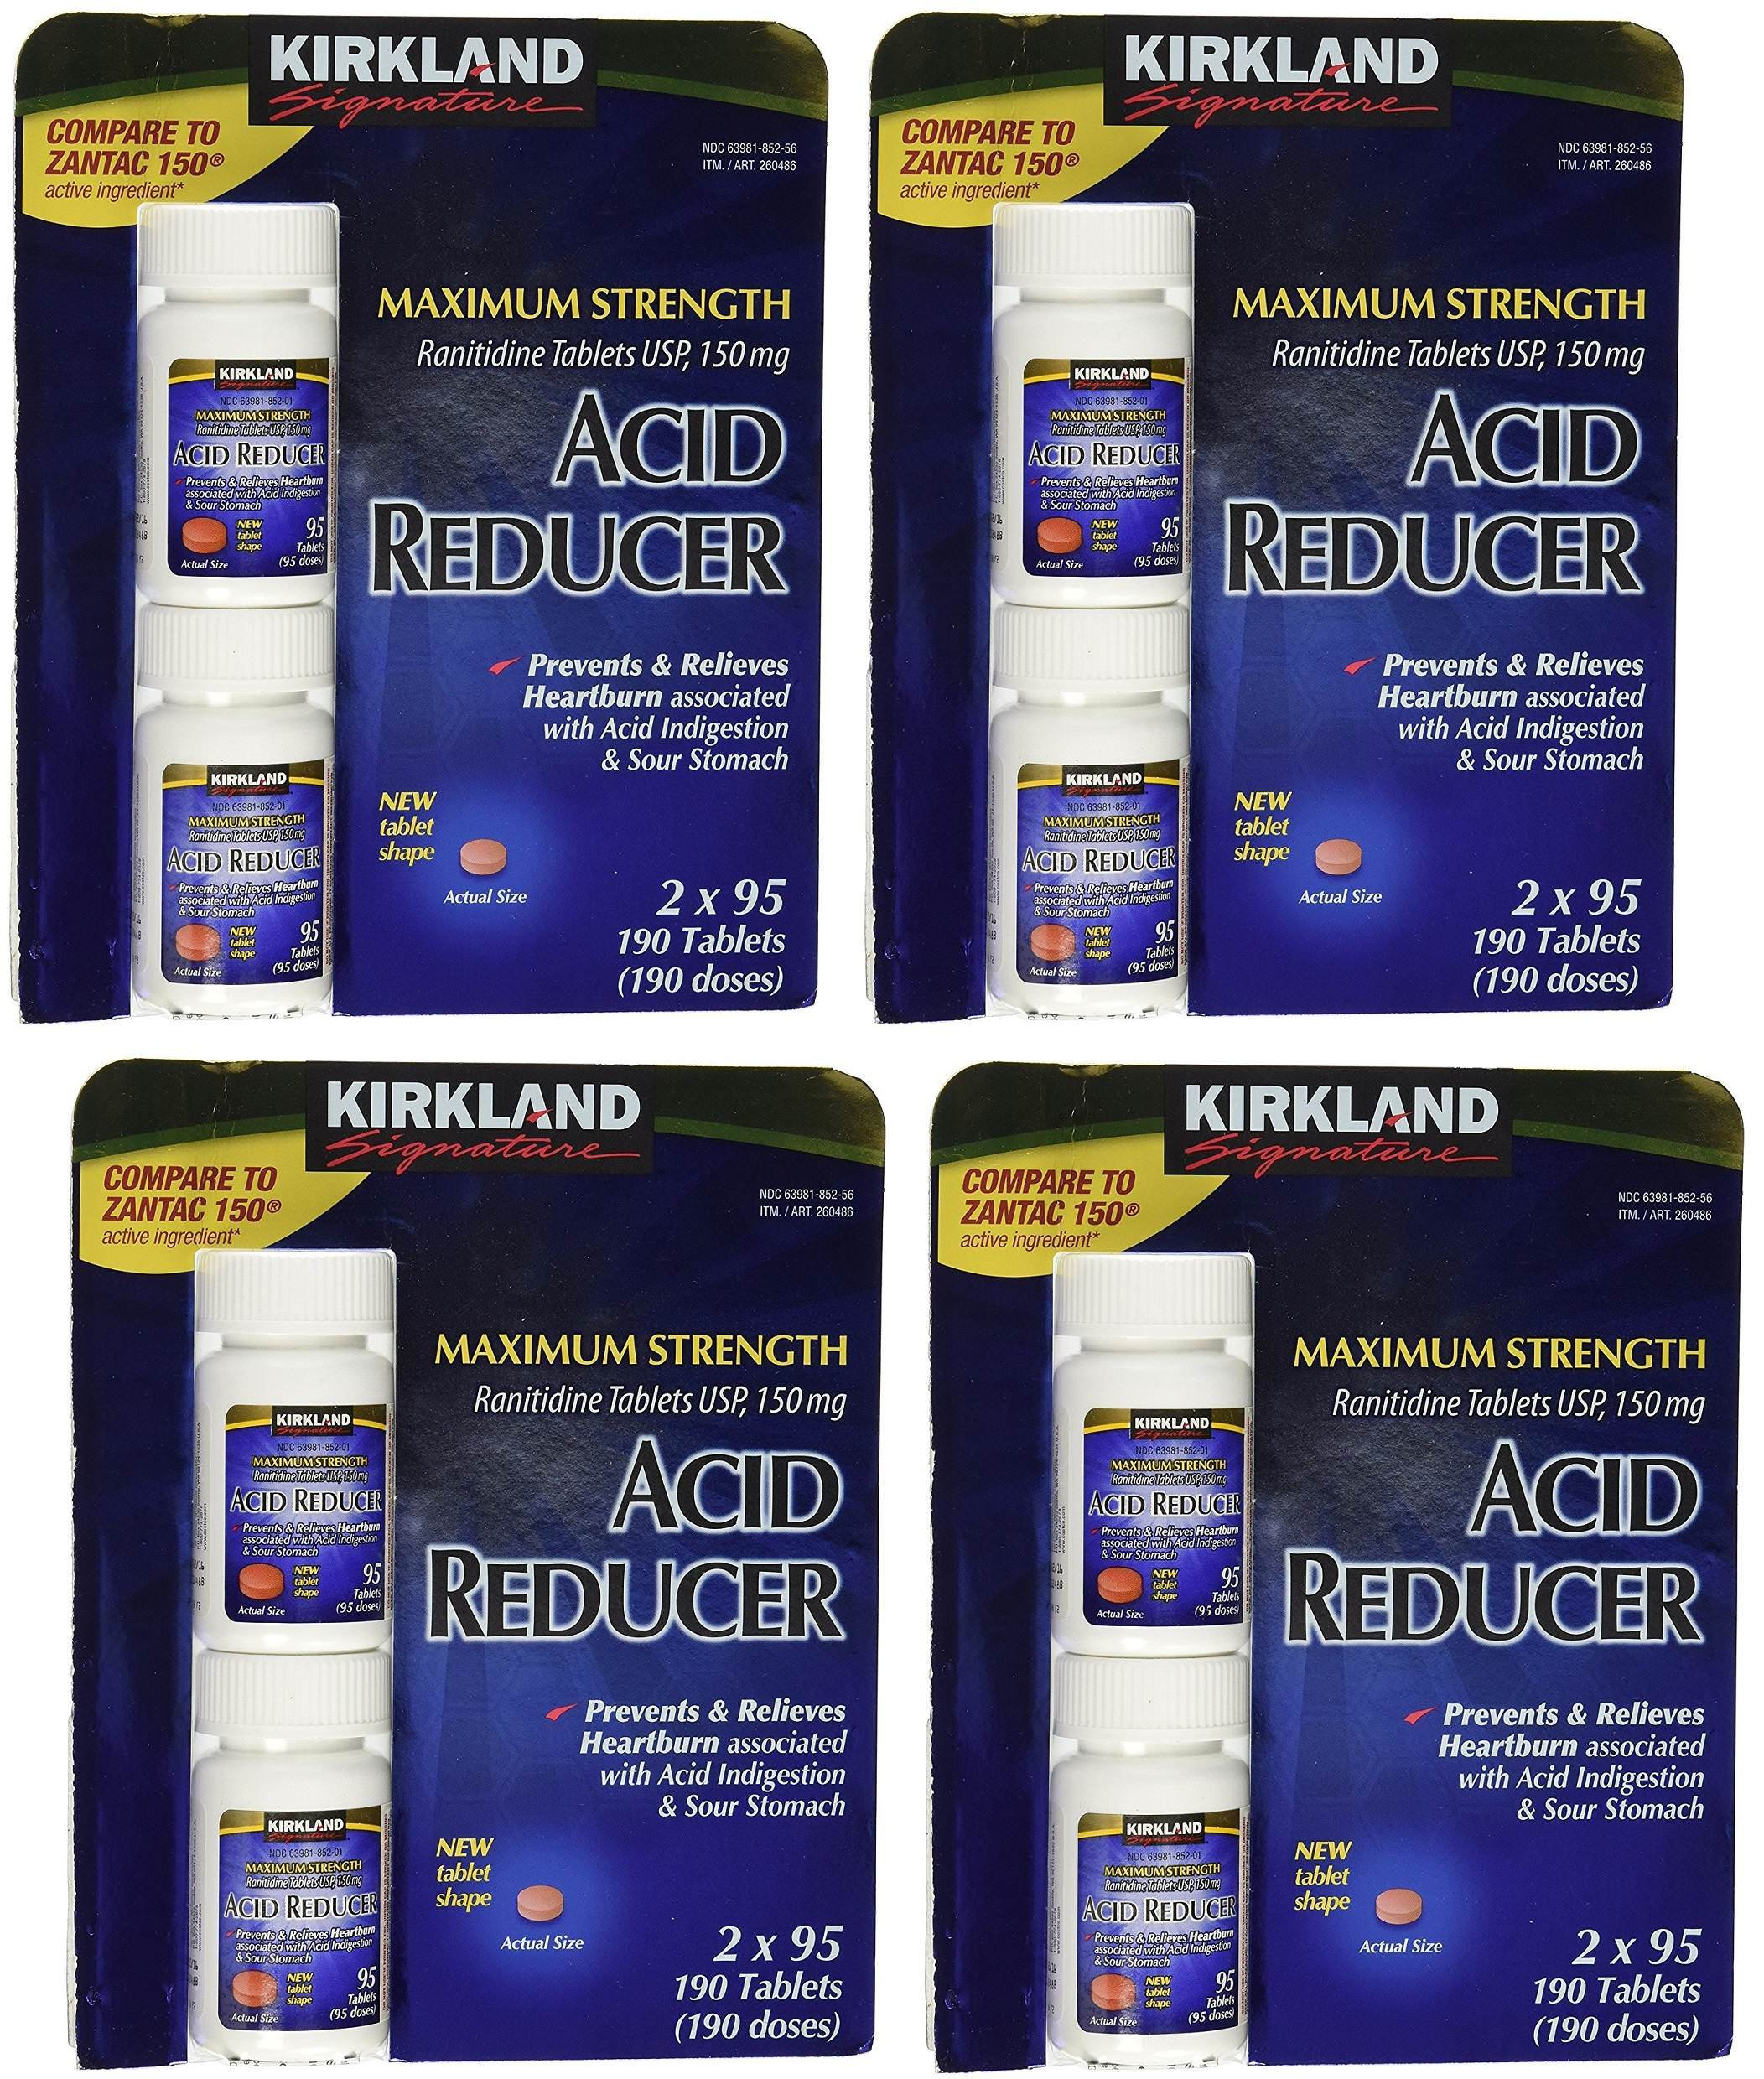 Kirkland Signature Maximum Strength Acid reducer Ranitidine tablets USP 150MG PANZpv, 4Pack (190 Tablets)